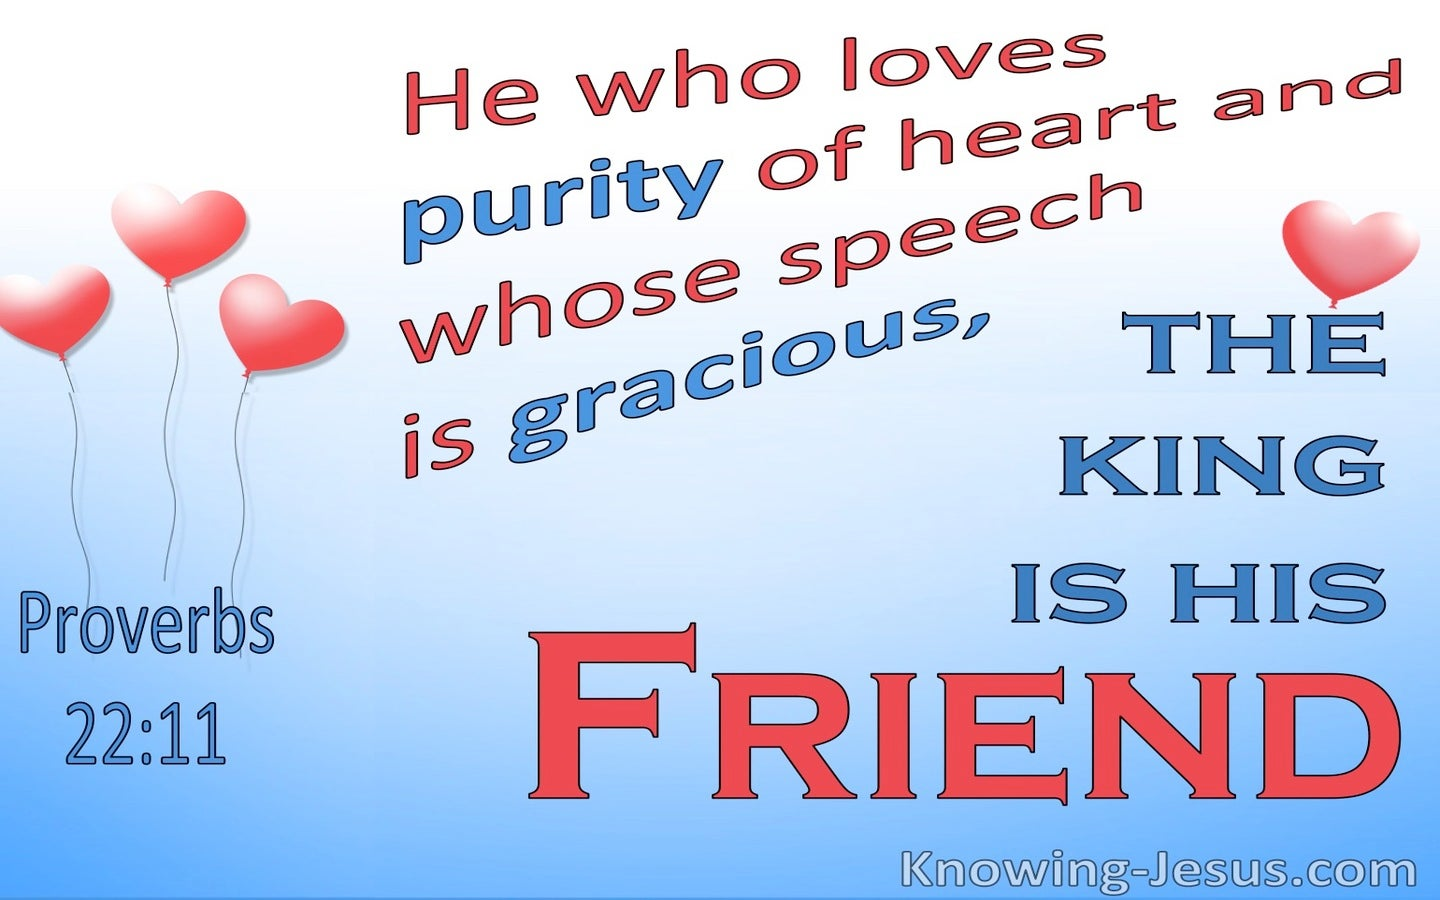 Proverbs 22:11 Purity Of Heart And Gracious Speech The King Is His Friend (red)